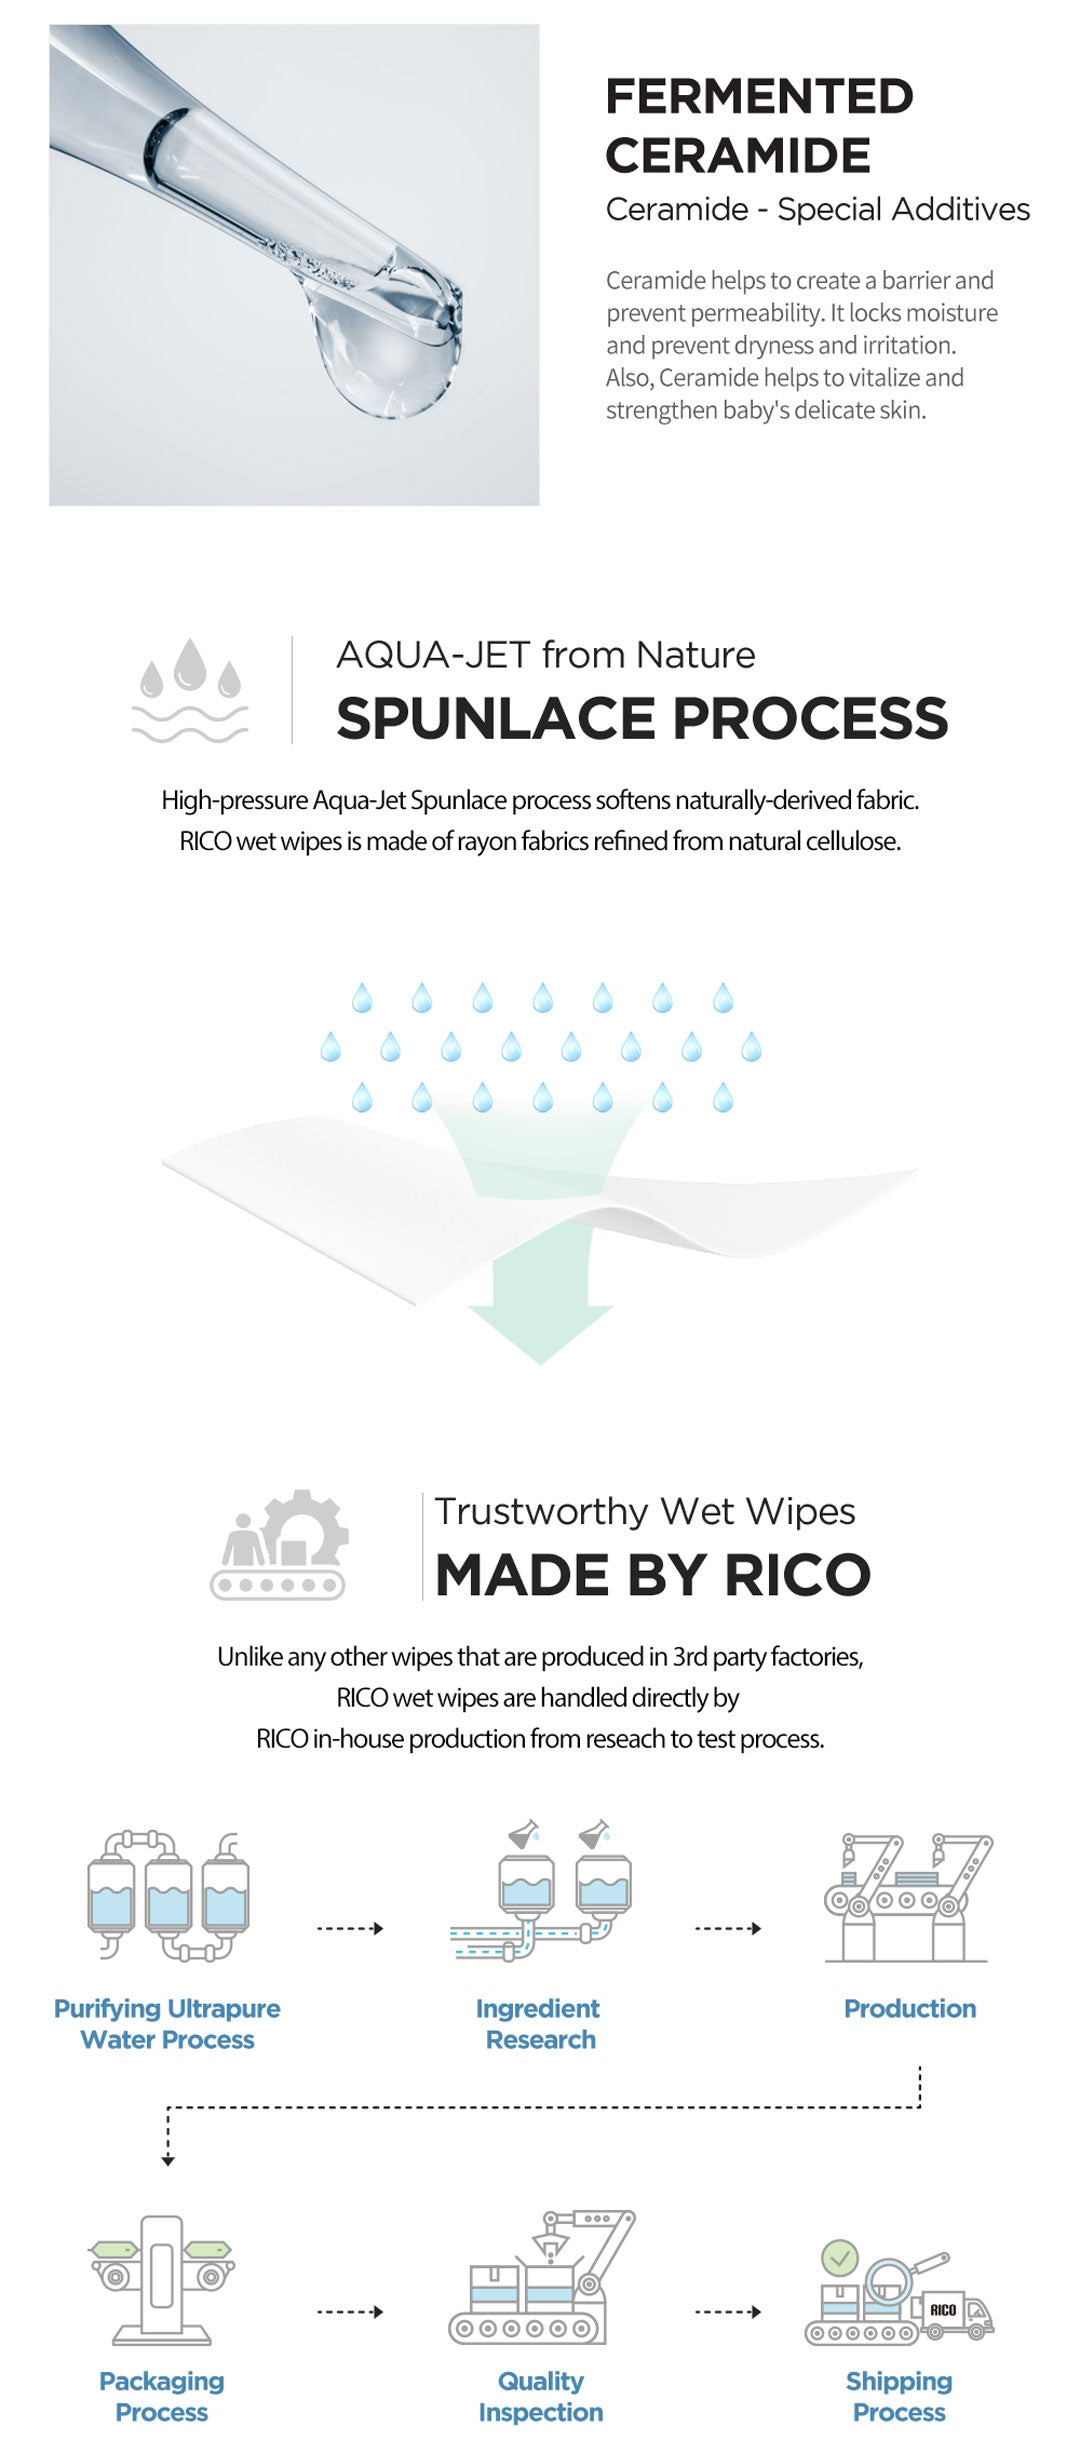 Rico Wet Wipes Production Process